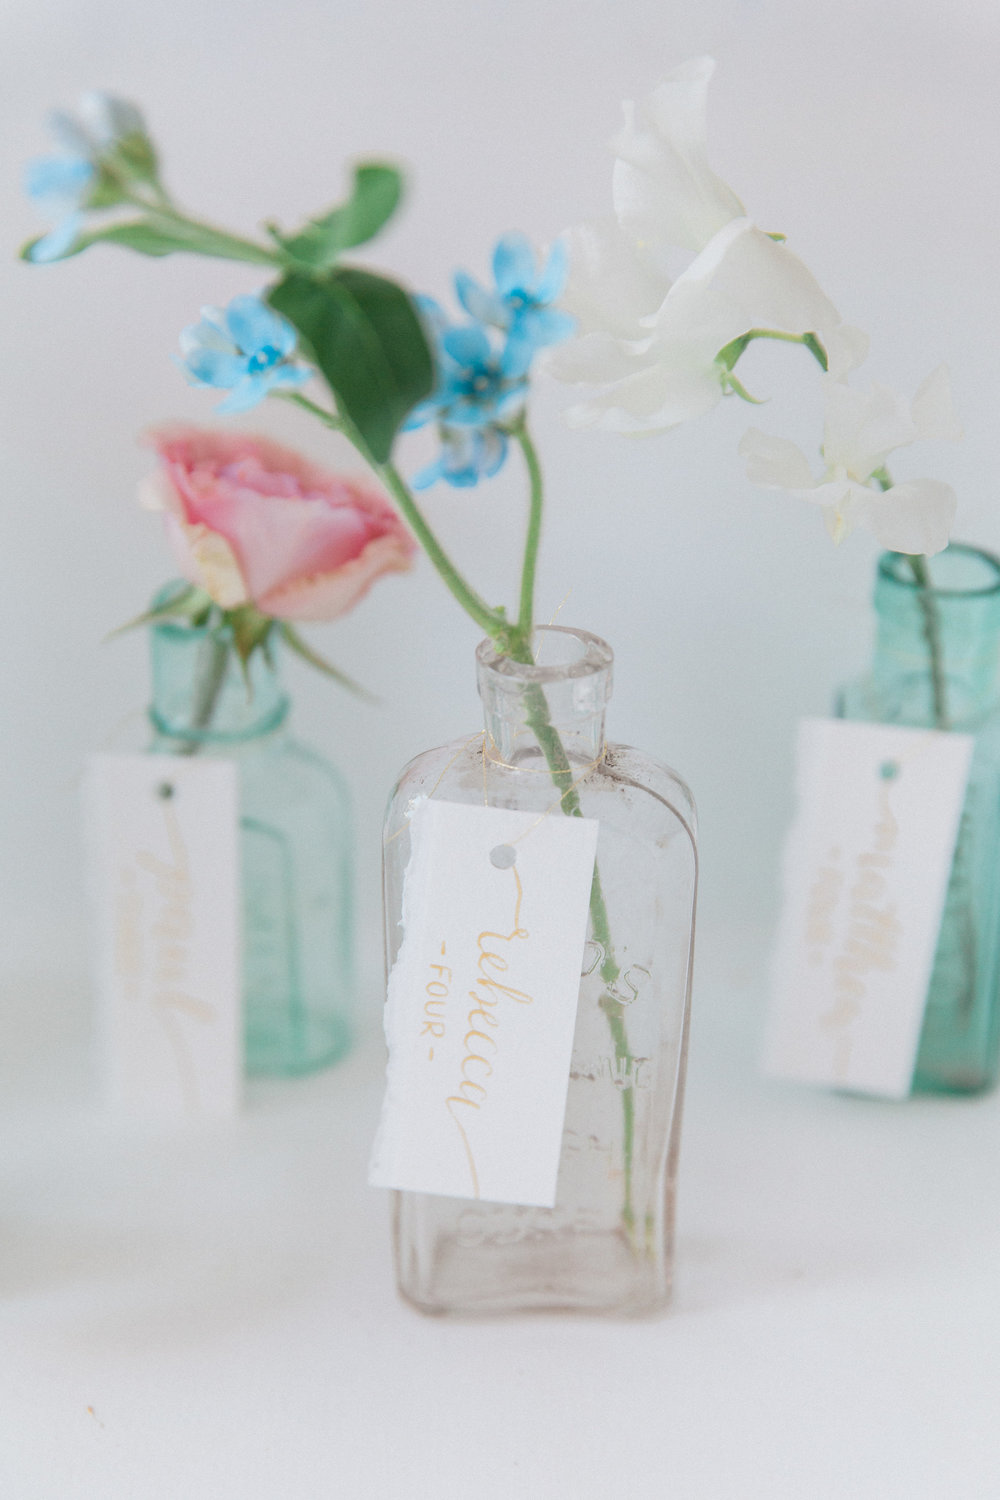 Vintage Amy Wedding Styling and Prop Hire-Vintage Luxe Wedding Reception-Vintage Medicine Bottle Table Plan